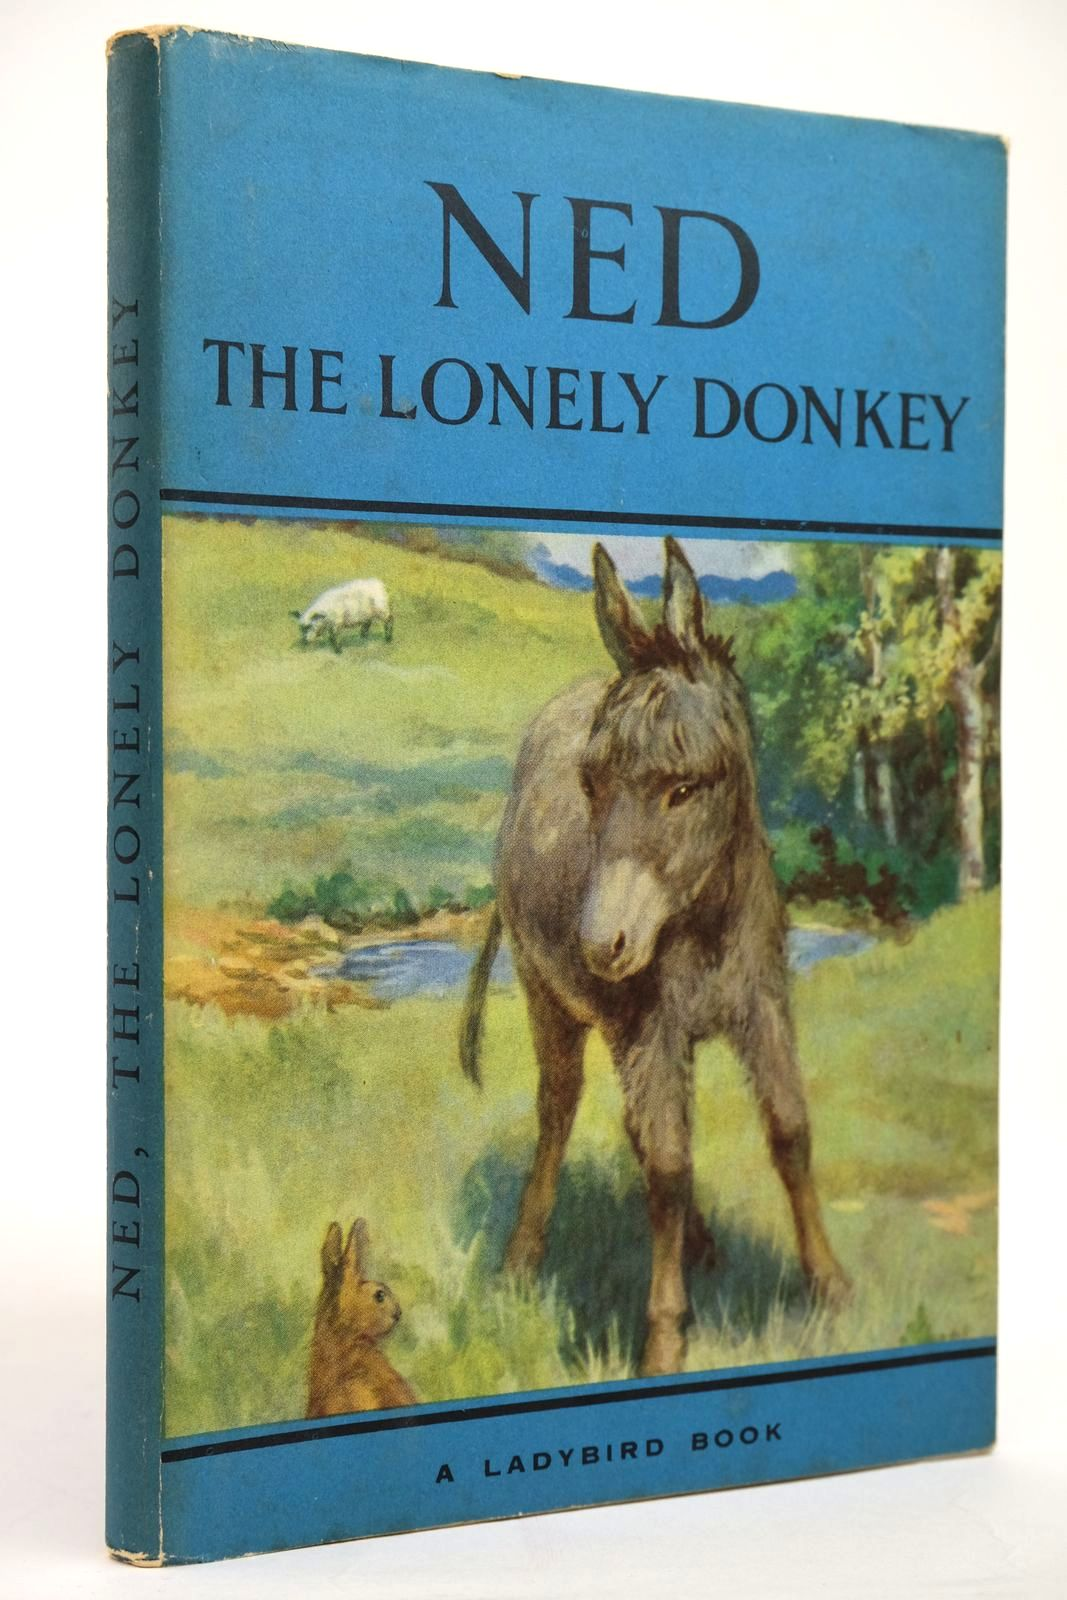 Photo of NED THE LONELY DONKEY written by Barr, Noel illustrated by Hickling, P.B. published by Wills & Hepworth Ltd. (STOCK CODE: 2135161)  for sale by Stella & Rose's Books